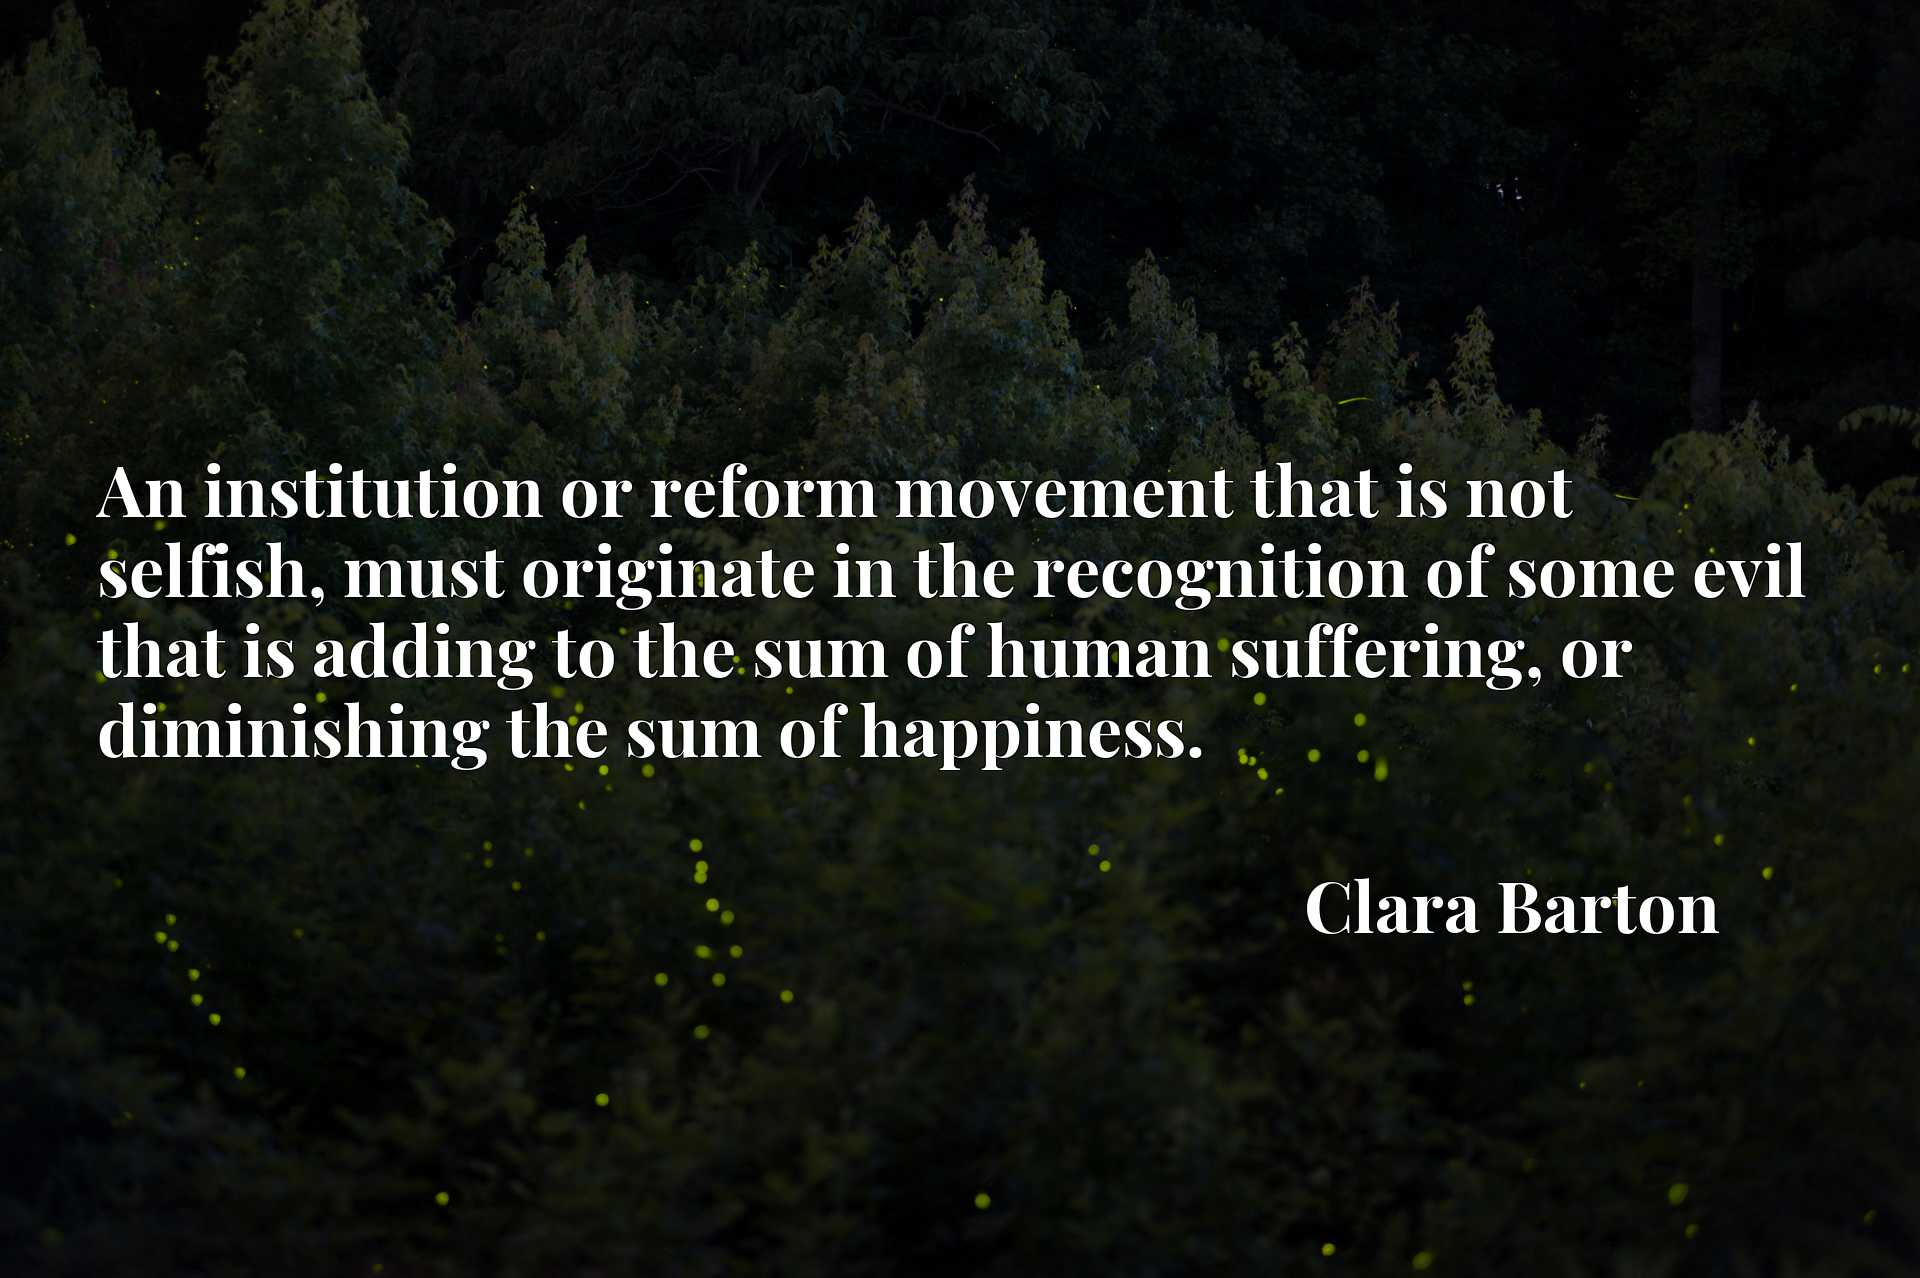 An institution or reform movement that is not selfish, must originate in the recognition of some evil that is adding to the sum of human suffering, or diminishing the sum of happiness.